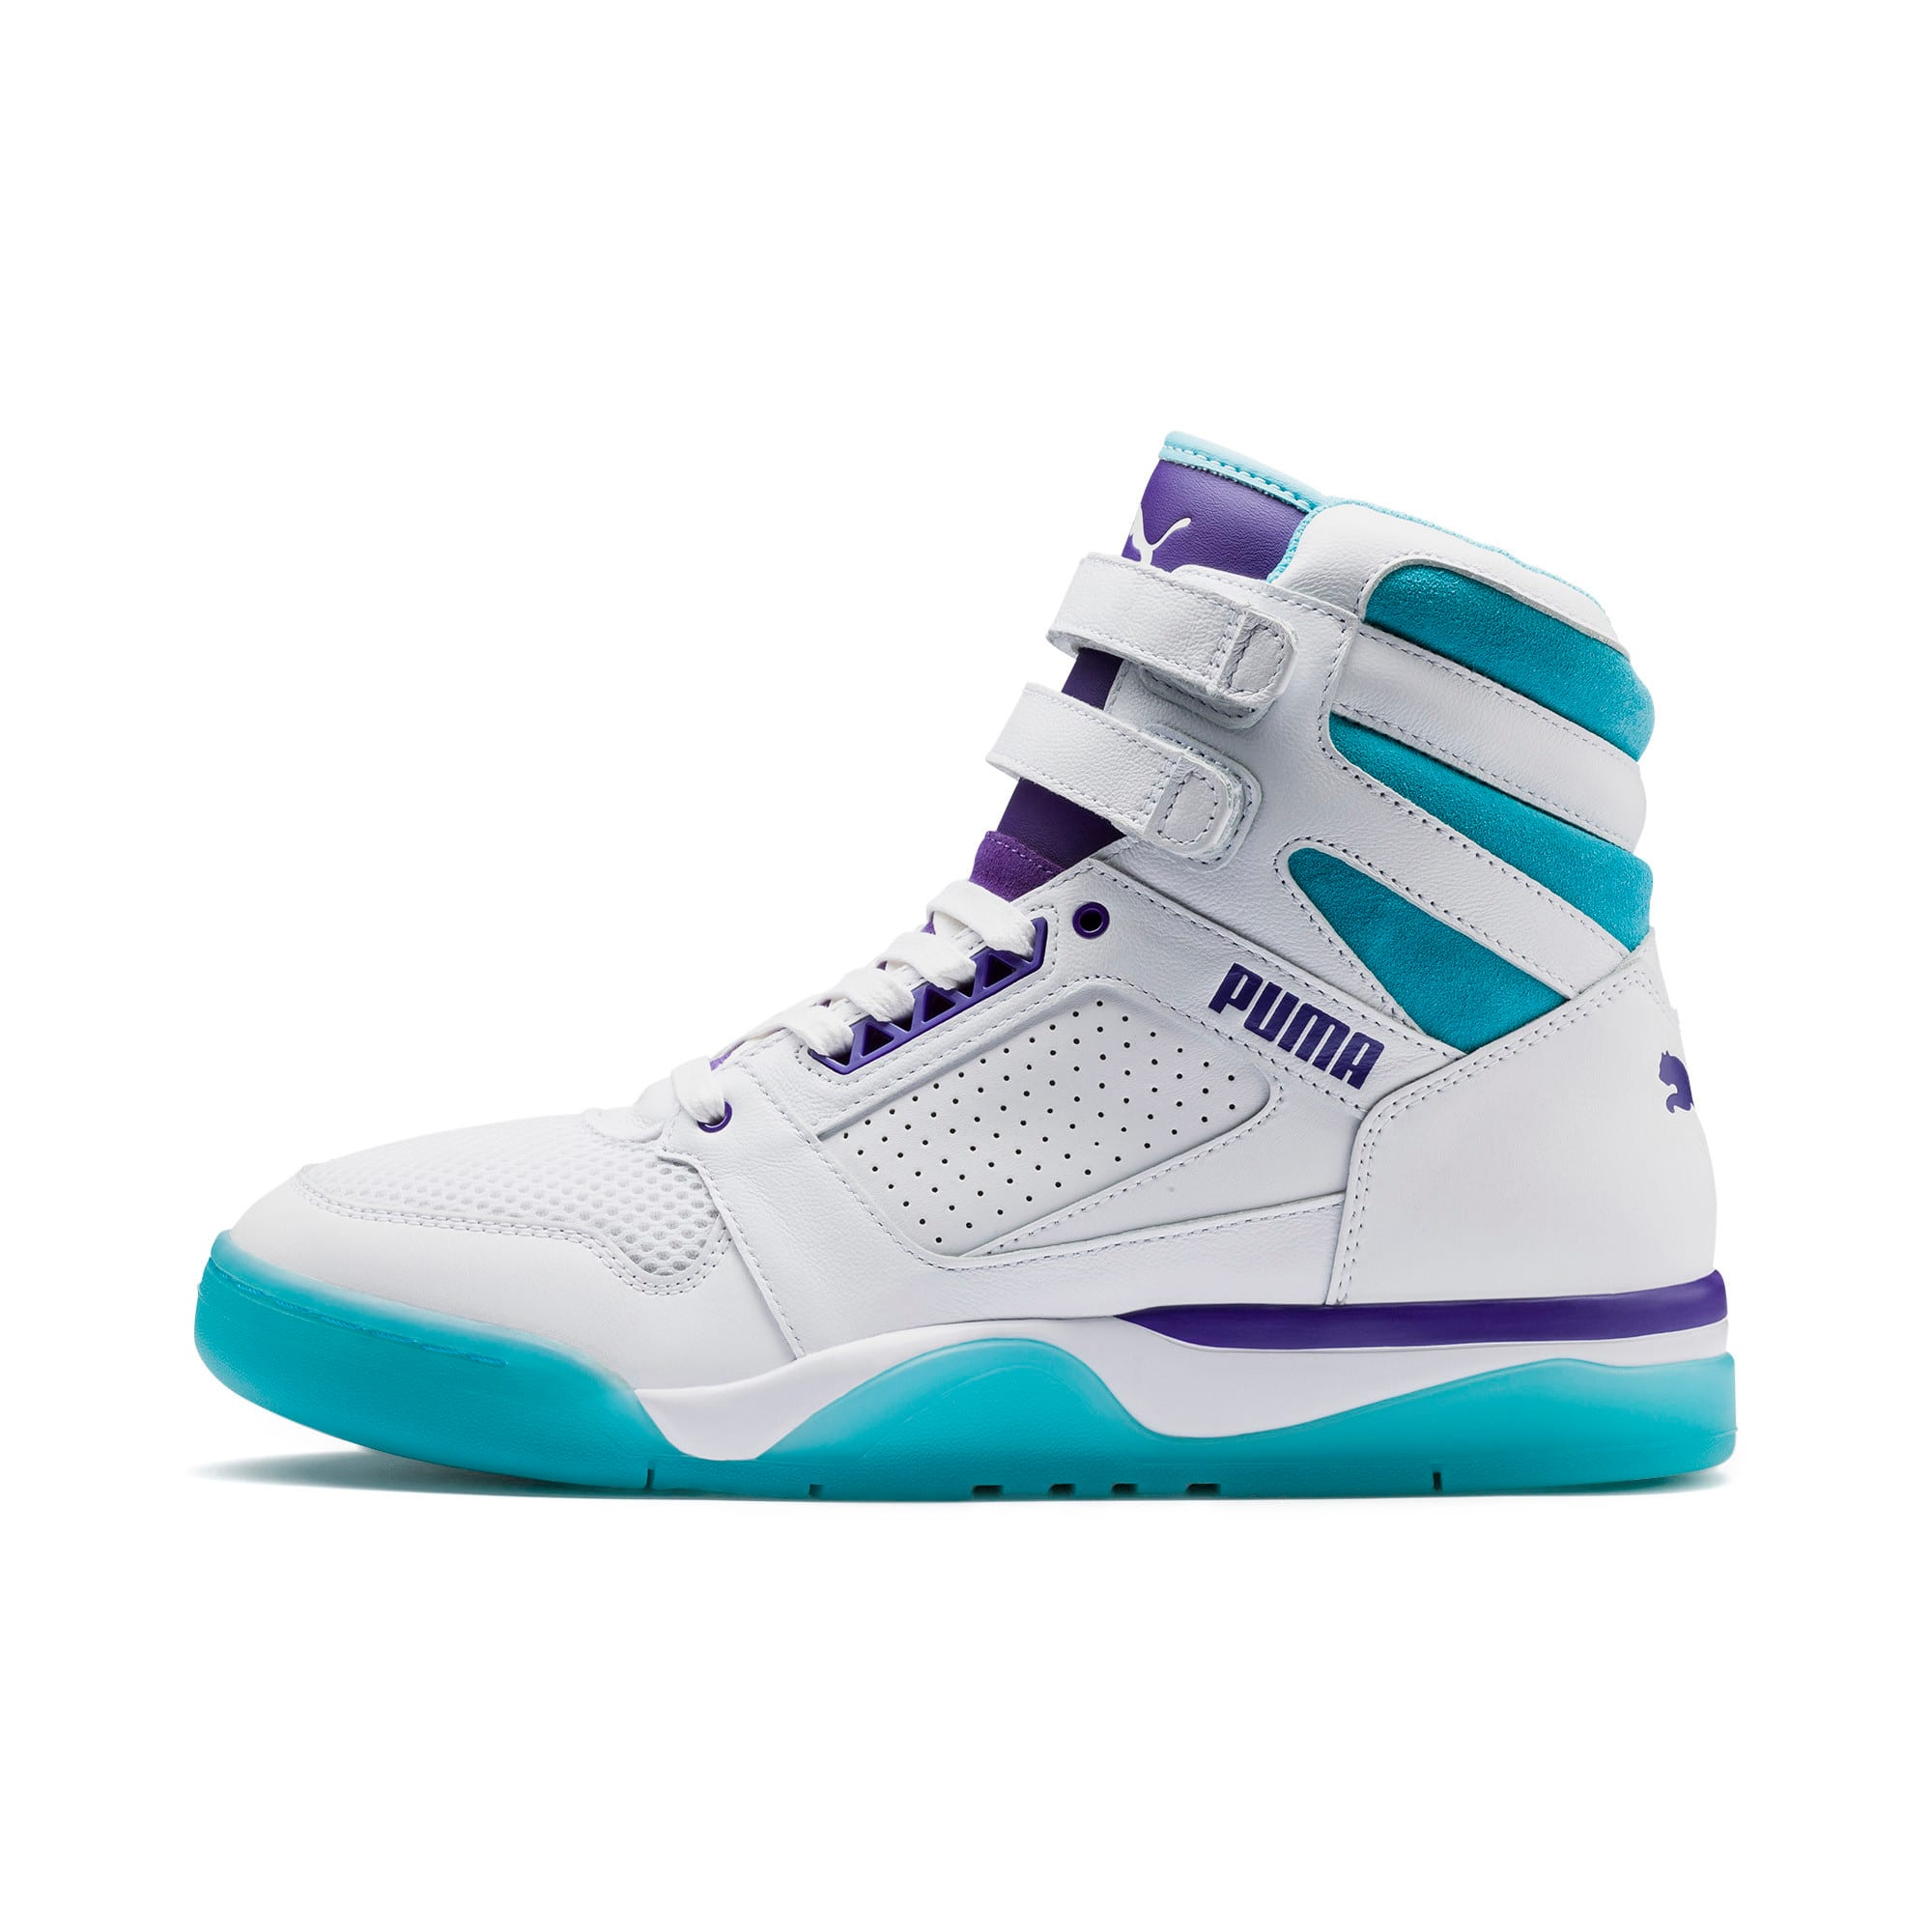 Thumbnail 1 of Palace Guard Mid Queen City Sneakers, Puma White-Blue Atoll, medium